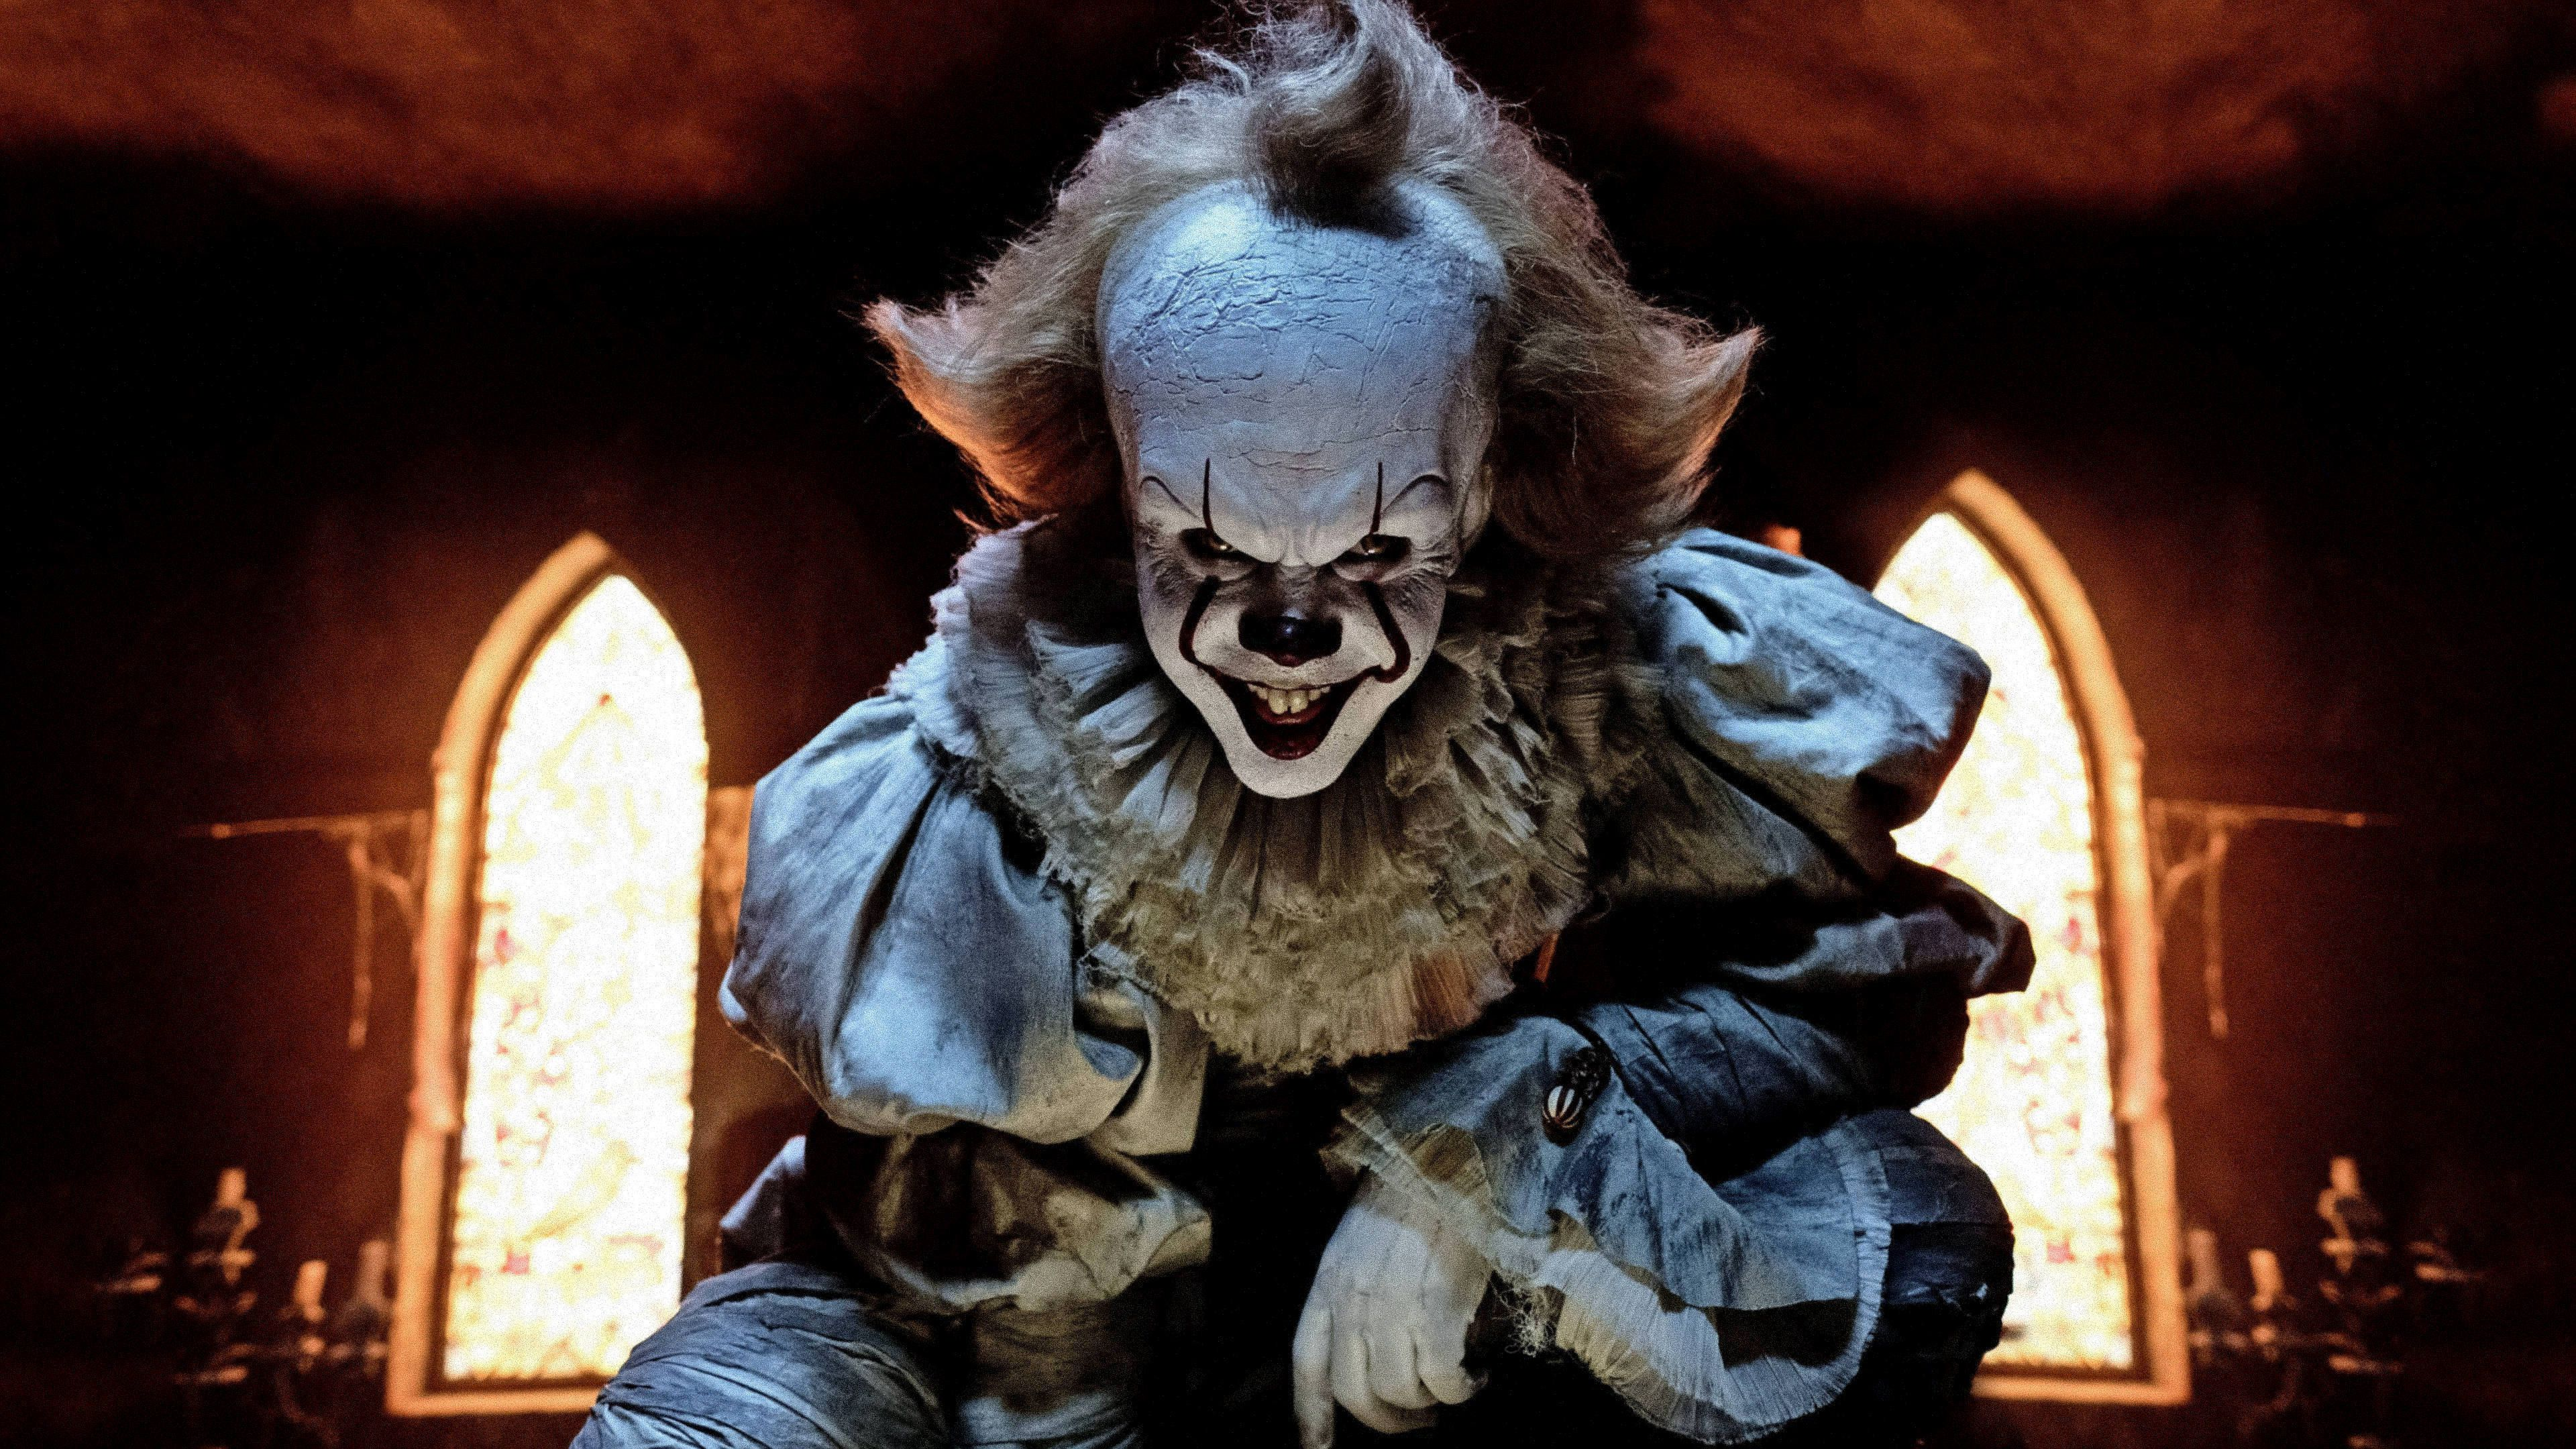 Pennywise The Clown In It 2017 Wallpaper